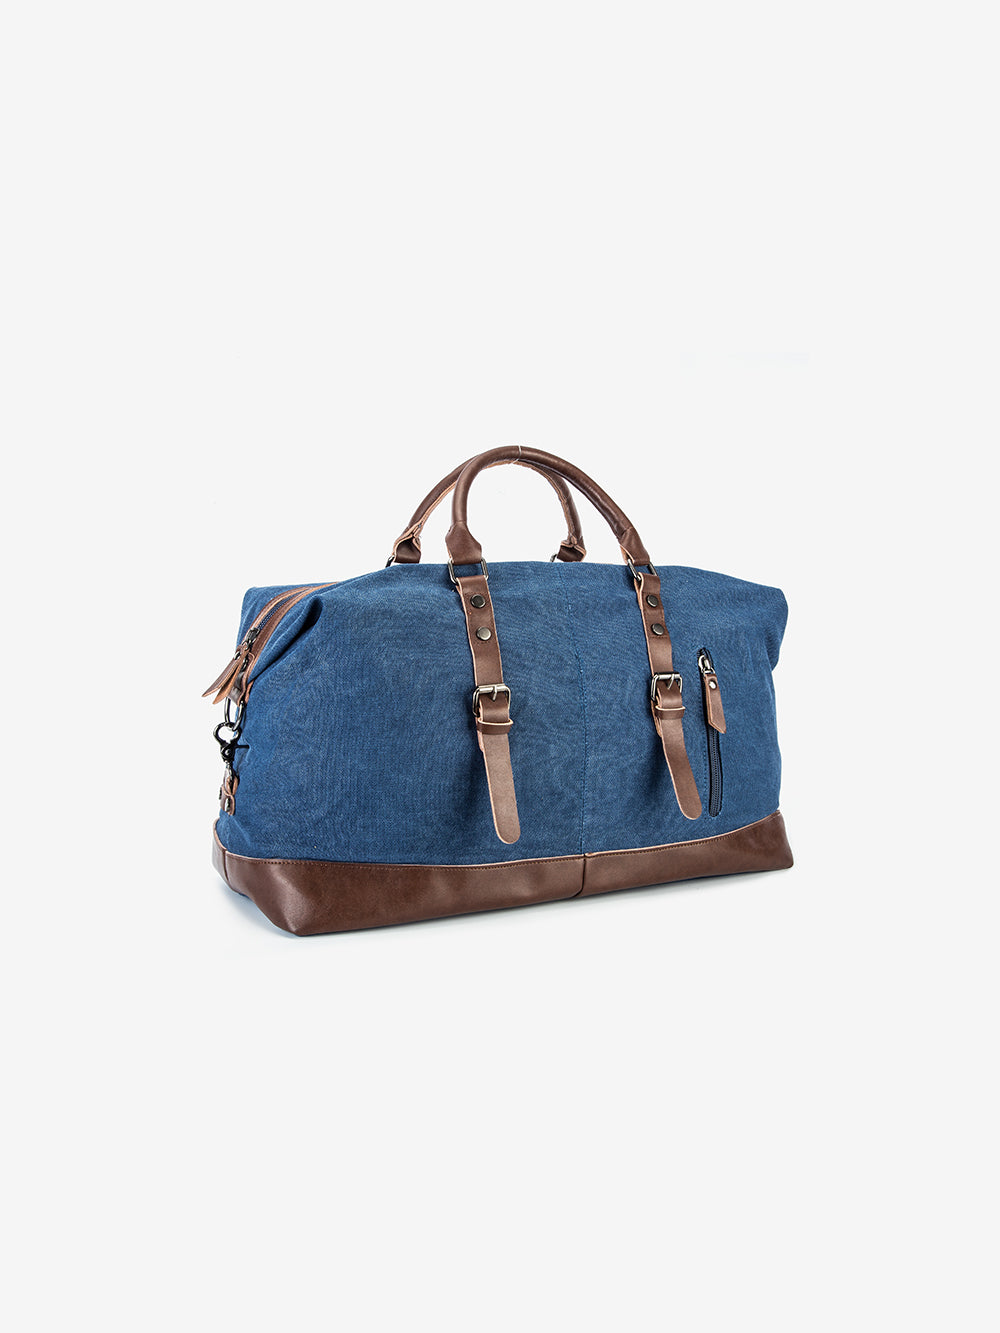 The Canvas Weekender Bag in Denim